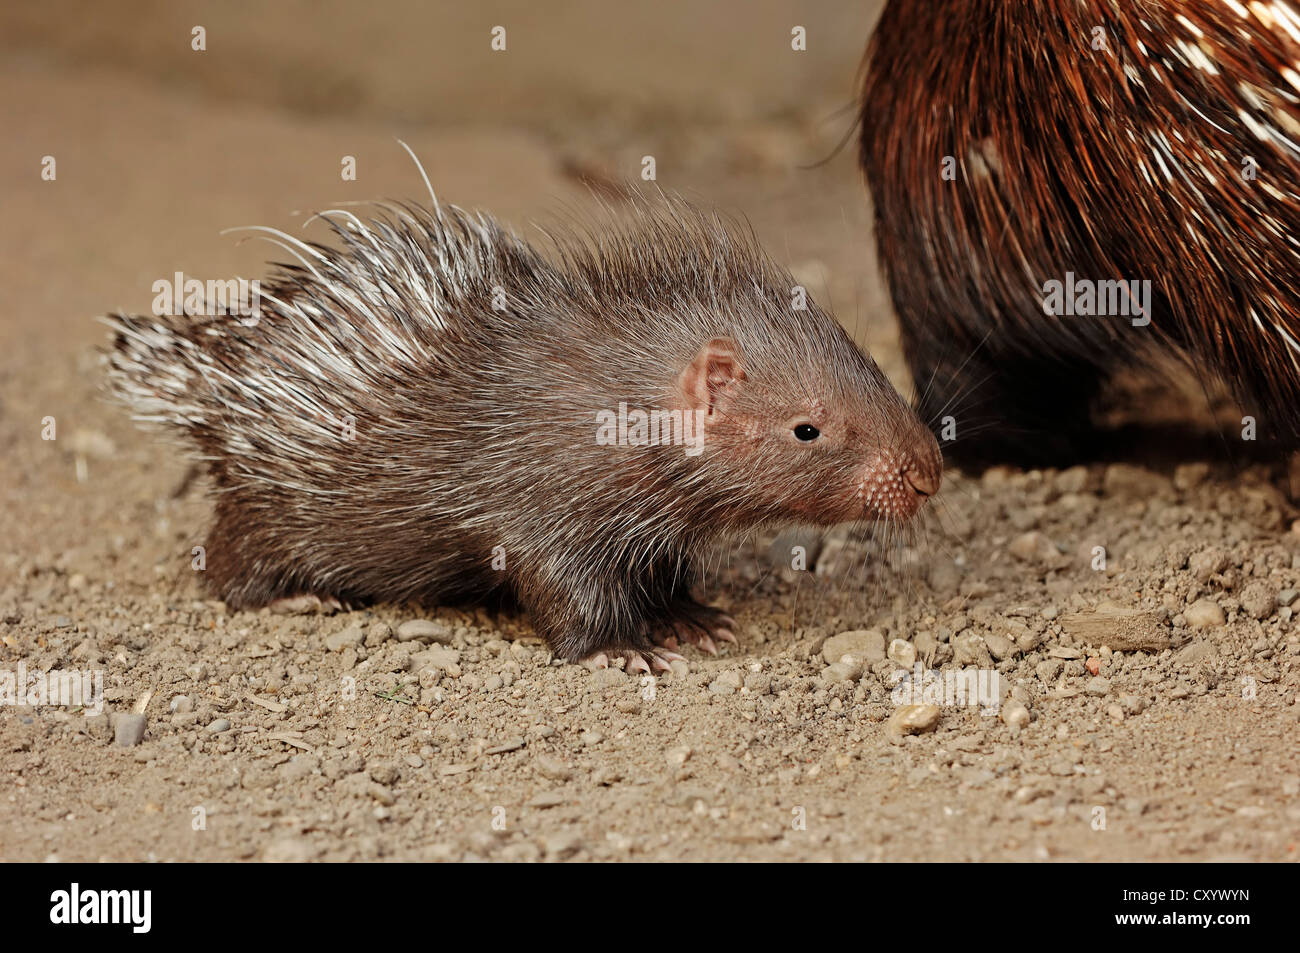 Indian crested porcupine (Hystrix indica, Hystrix leucura), young animal, native to the Middle East and India, captive - Stock Image